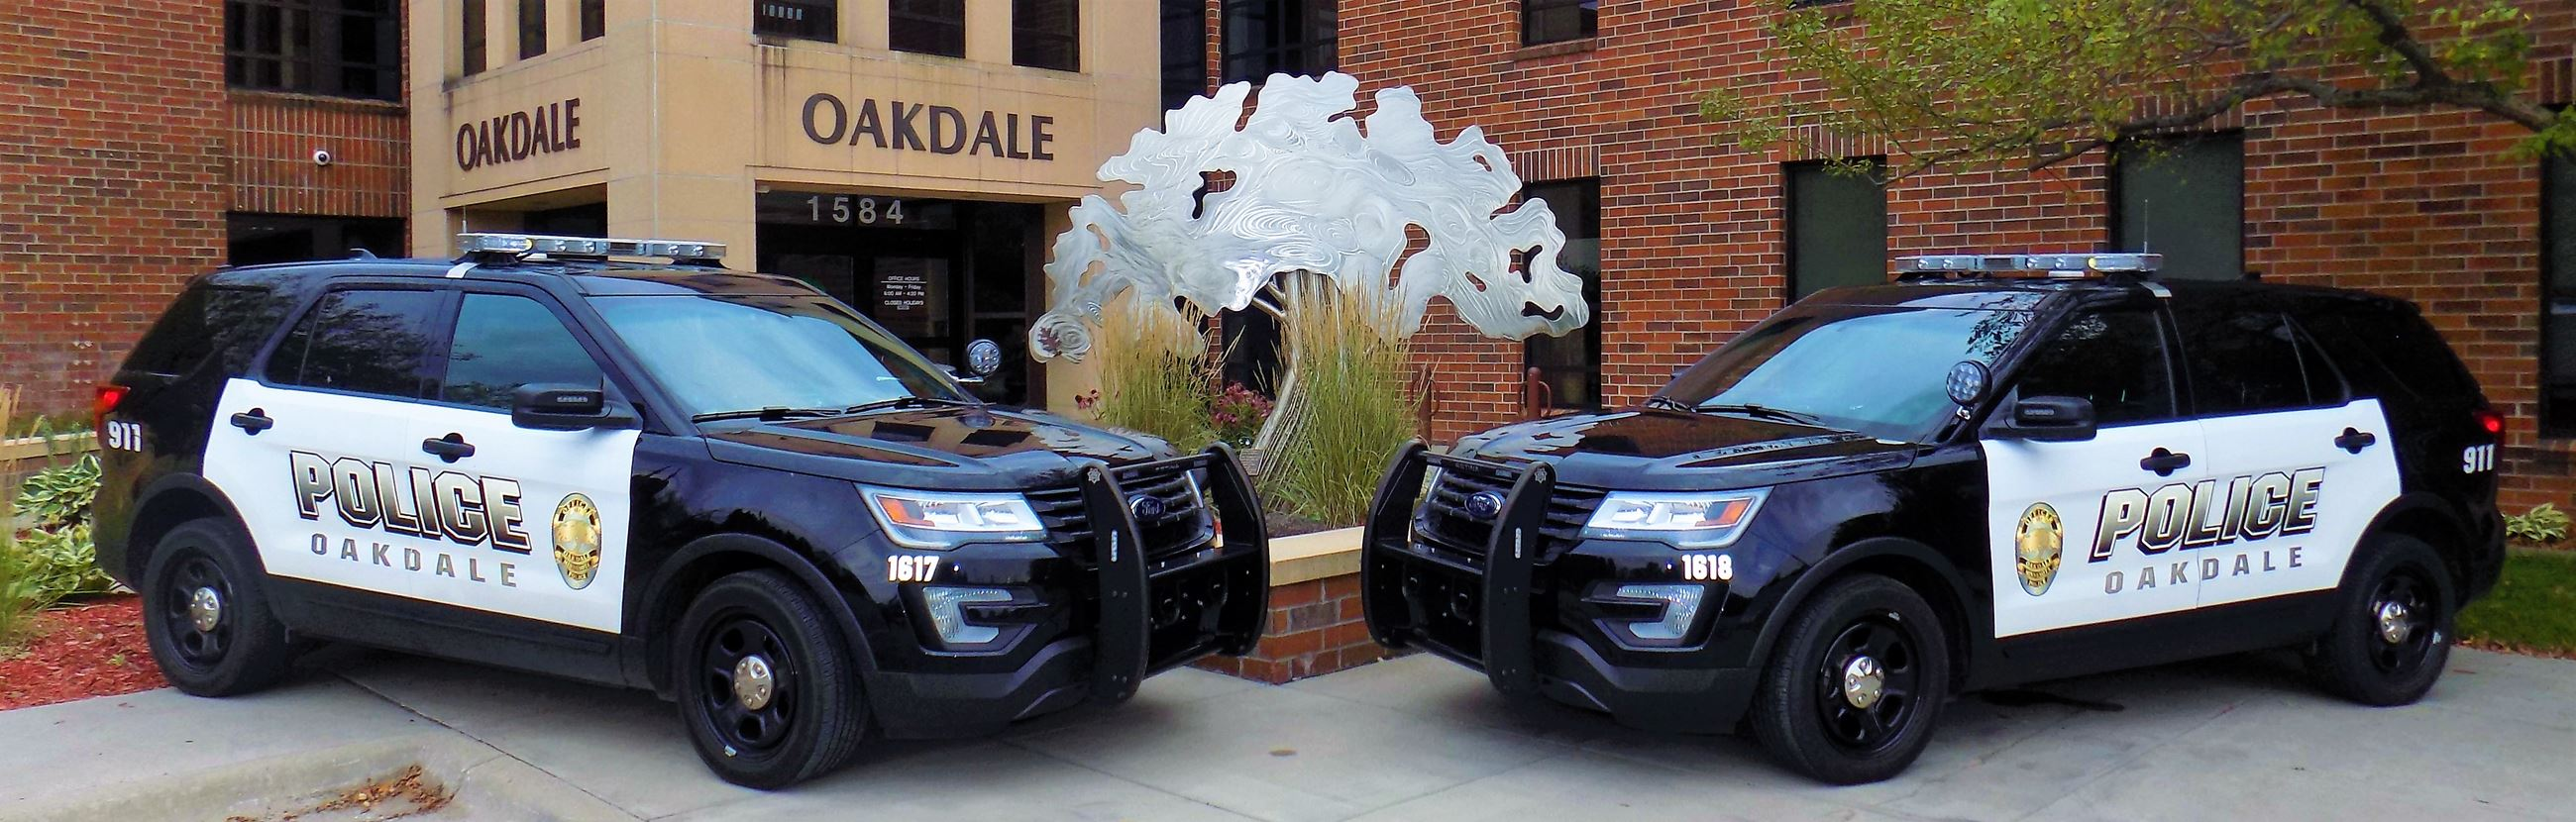 Oakdale police cars in front of city hall